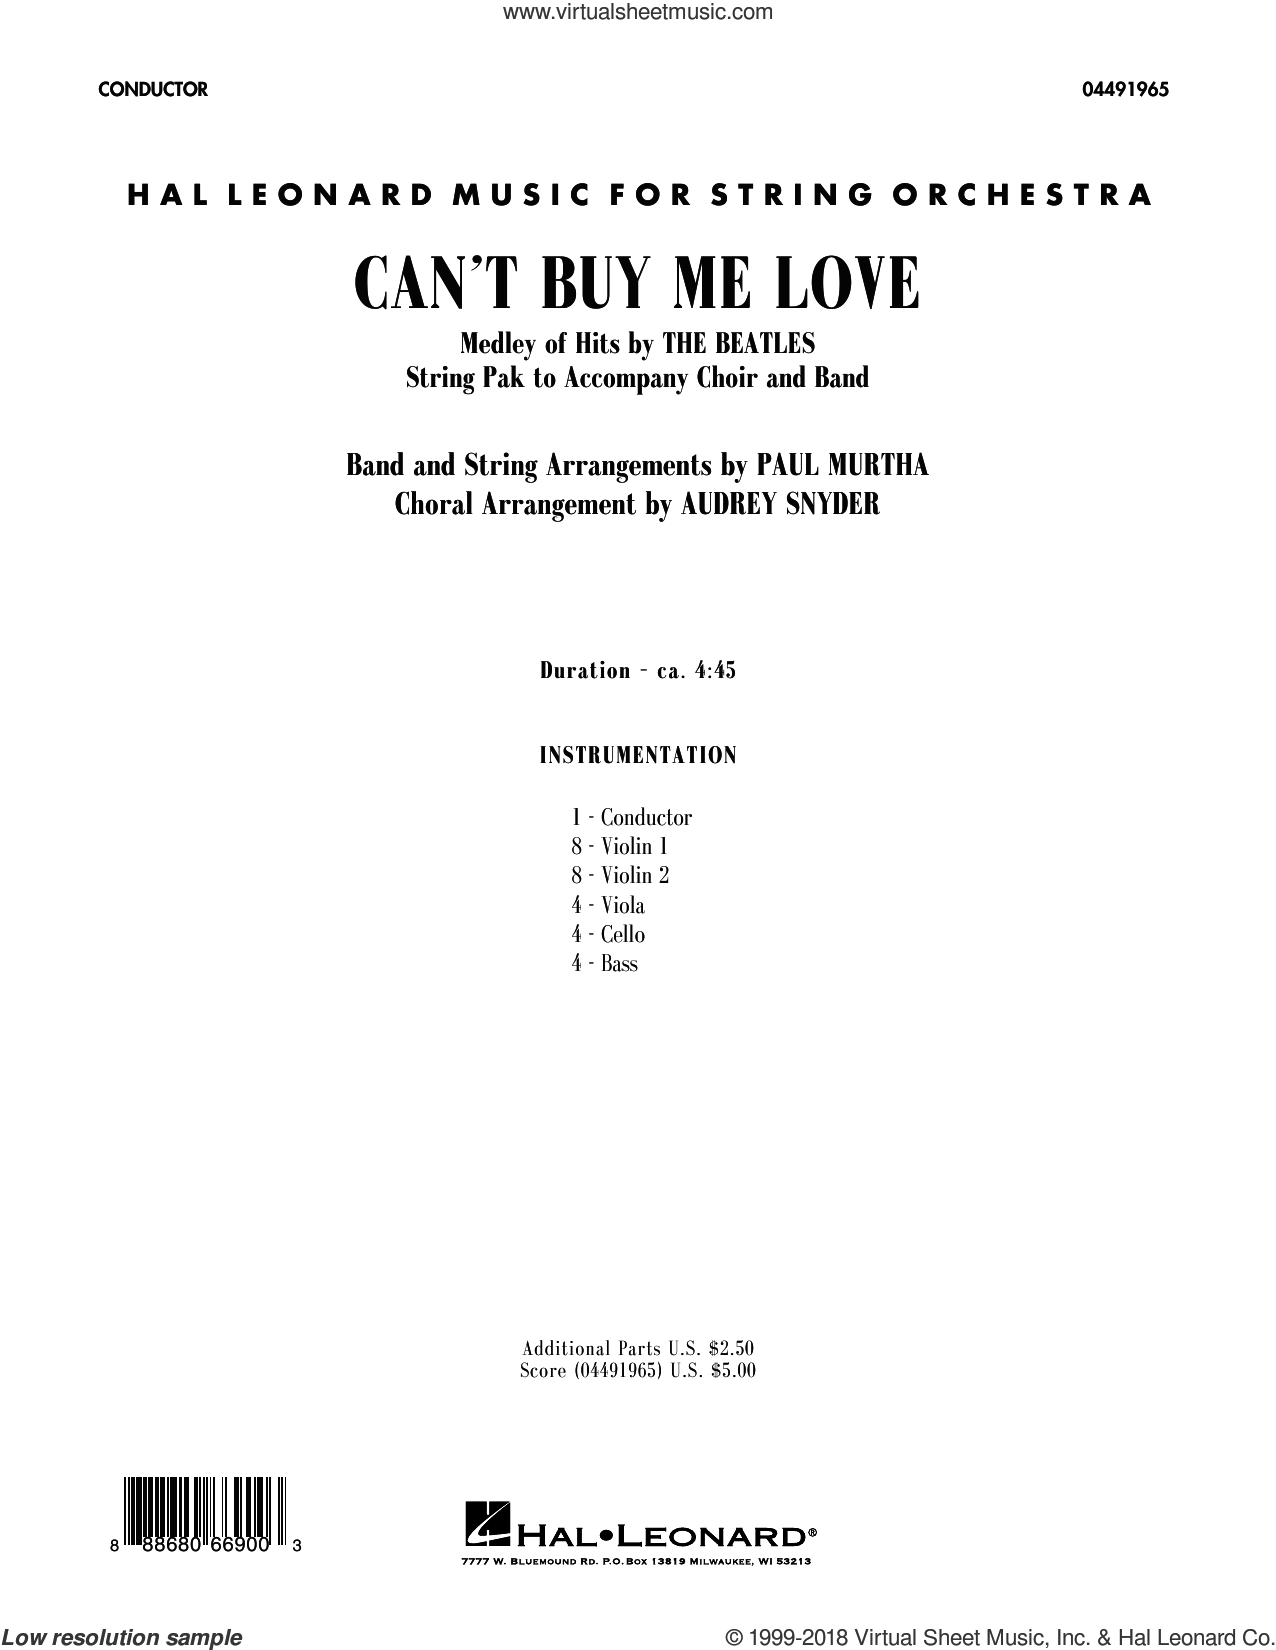 Can't Buy Me Love (COMPLETE) sheet music for orchestra (Strings) by Paul McCartney, Audrey Snyder, Beatles, George Harrison, John Lennon and Paul Murtha, intermediate skill level